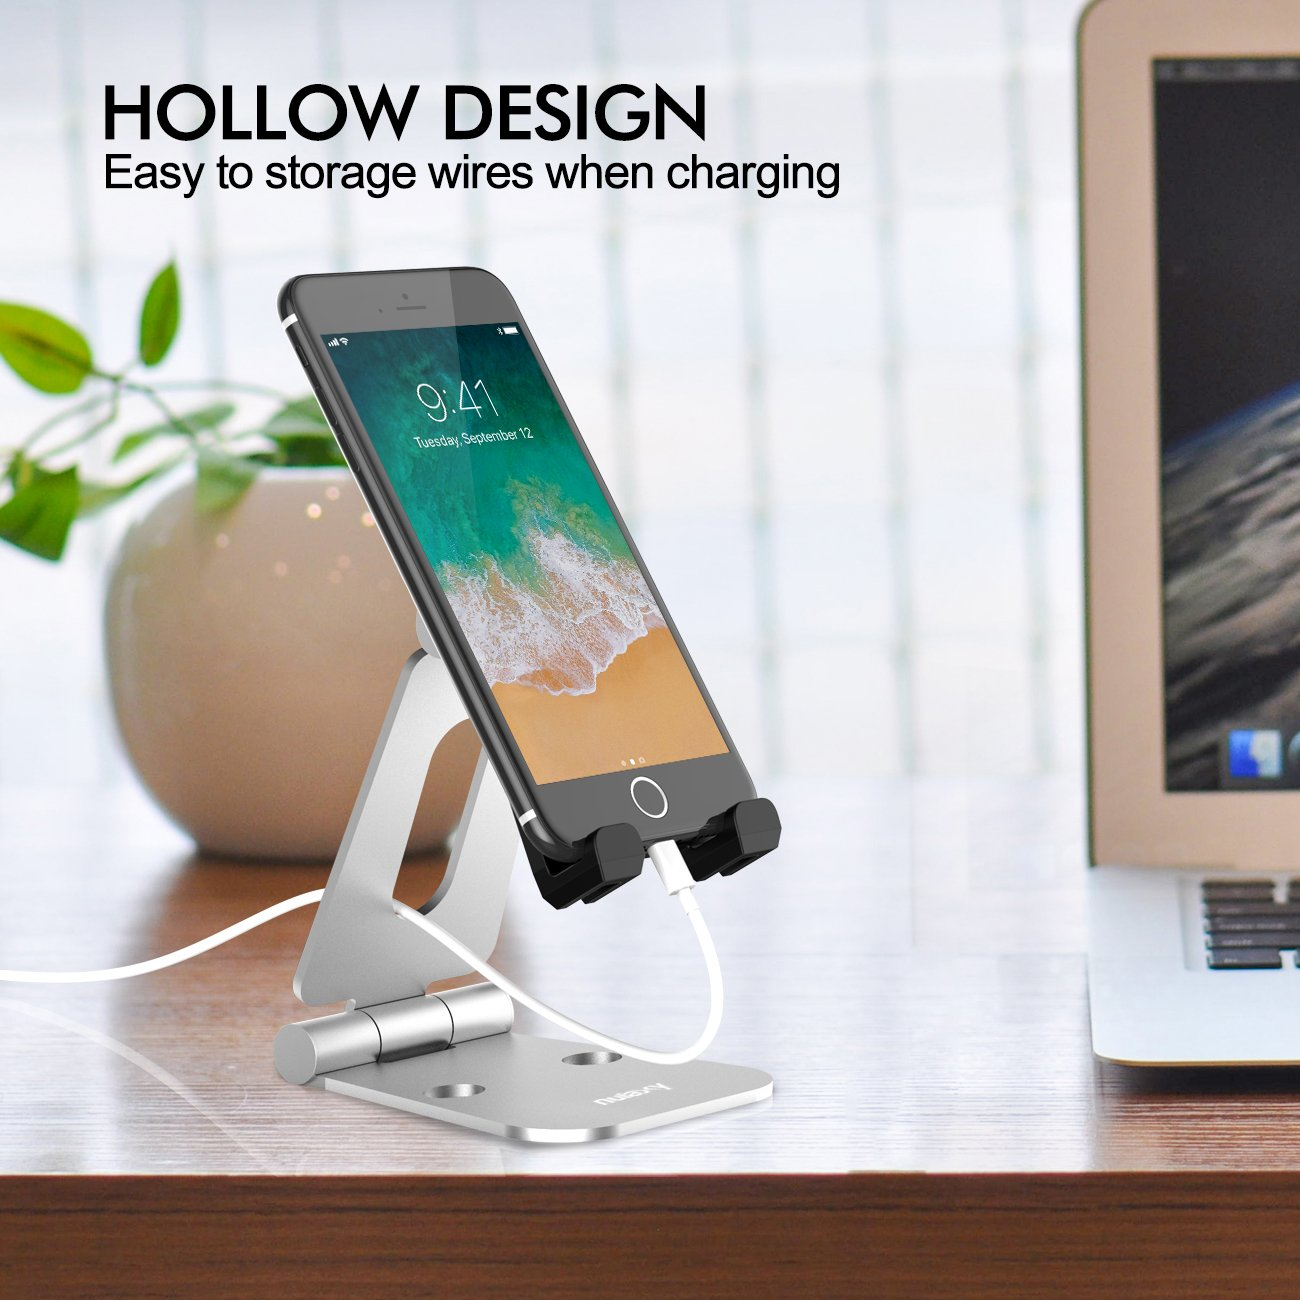 Nulaxy Dual Foldable Phone Stand, Multi-Angle Cell Phone Tablet Video Game Stand for Nintendo Switch iPhone X 8 7 6 Plus 5 5c, Accessories, iPad Universal for All Other Tablets Phones-Silver by Nulaxy (Image #5)